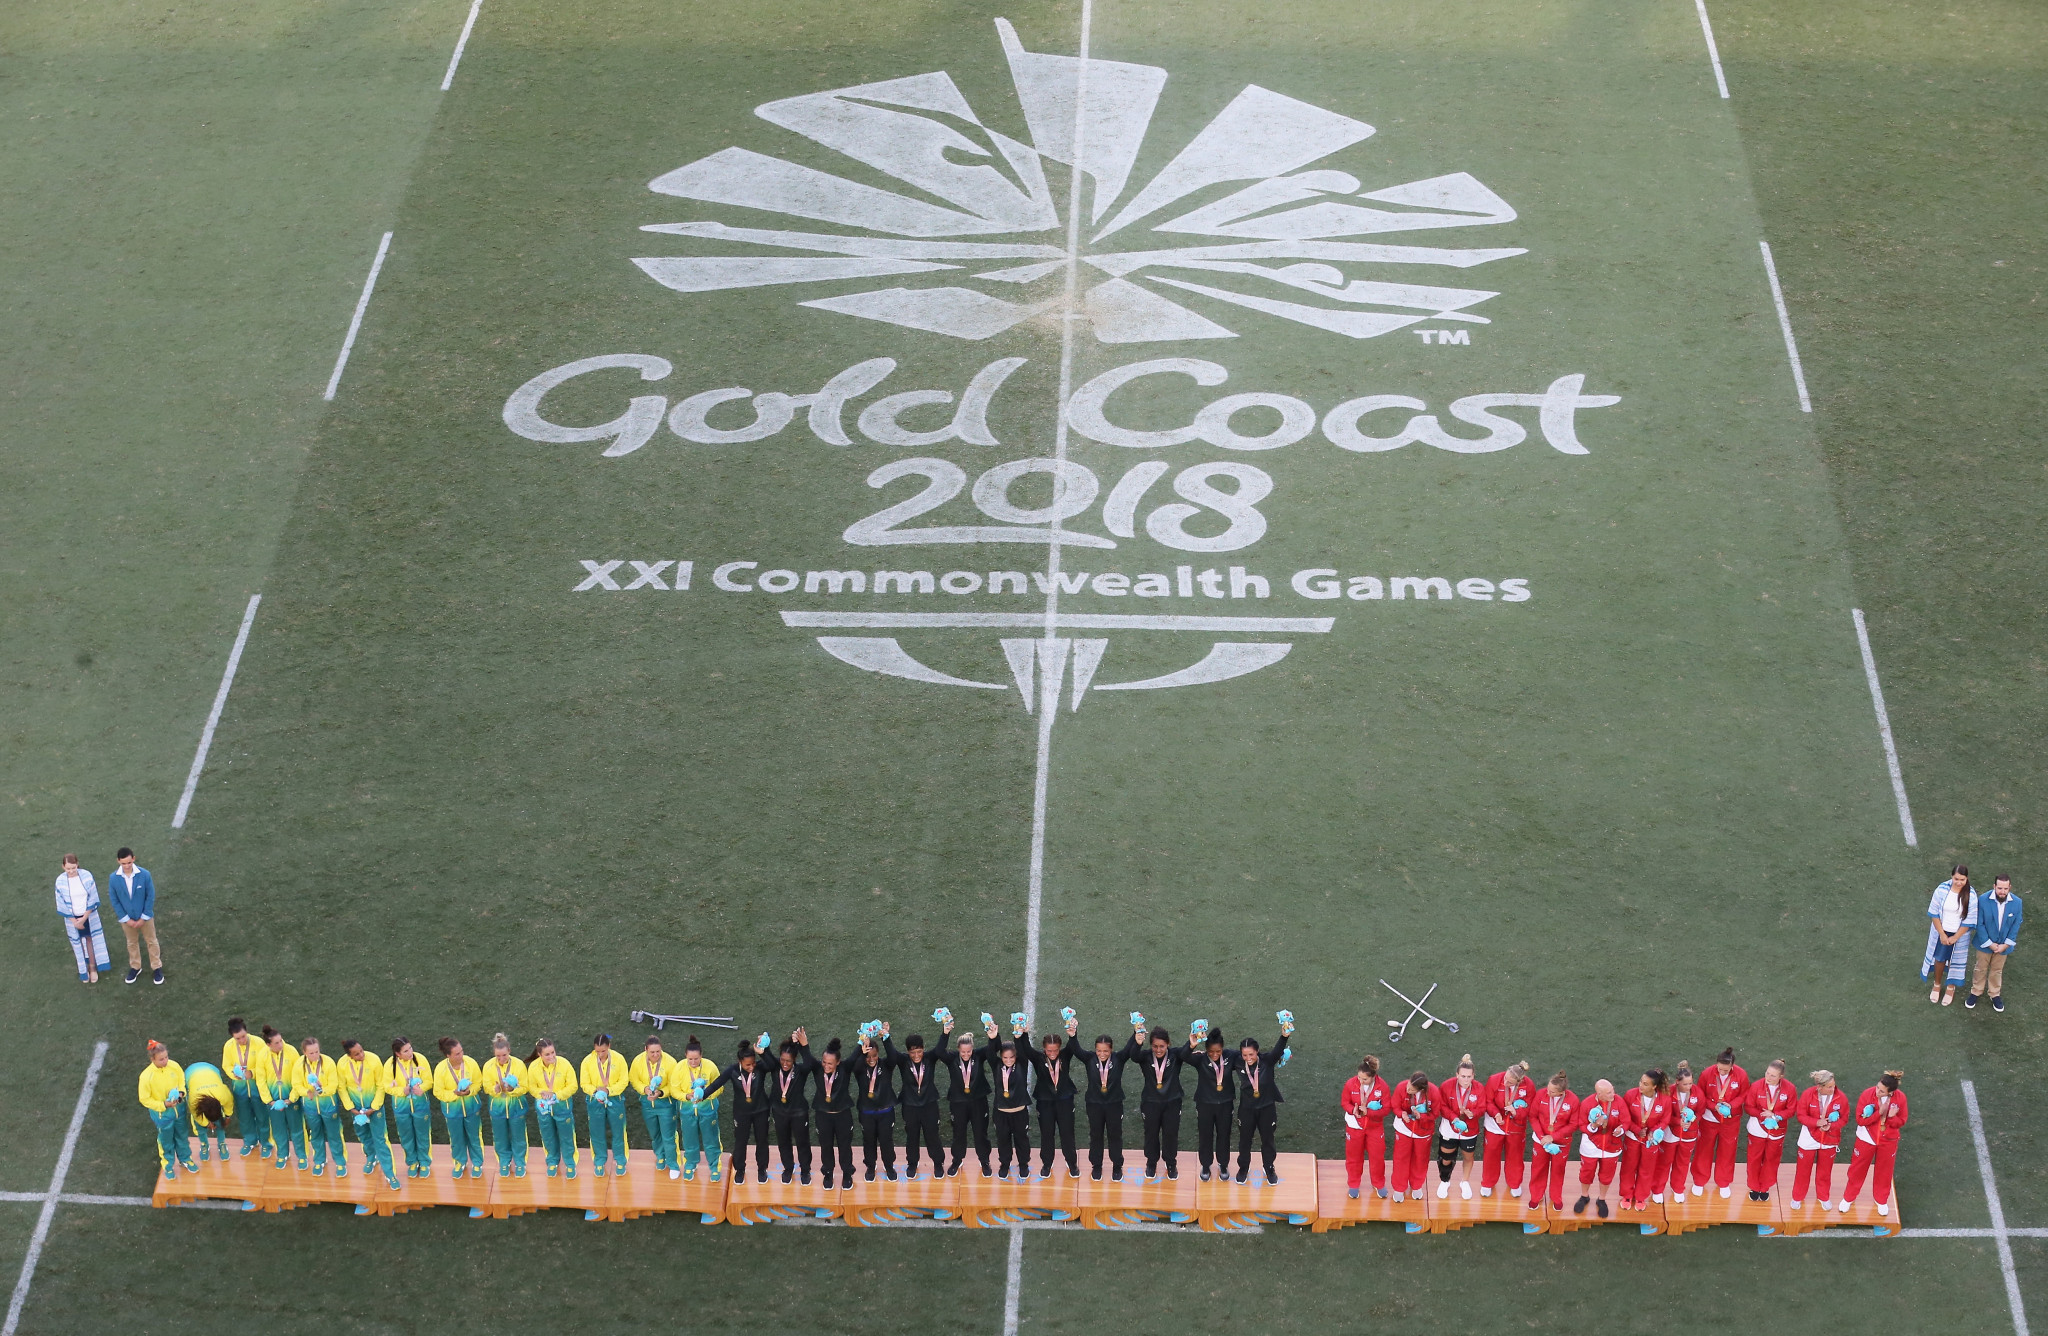 Facilities used at the Gold Coast 2018 Commonwealth Games are expected to be included in a Queensland Olympic bid ©Getty Images